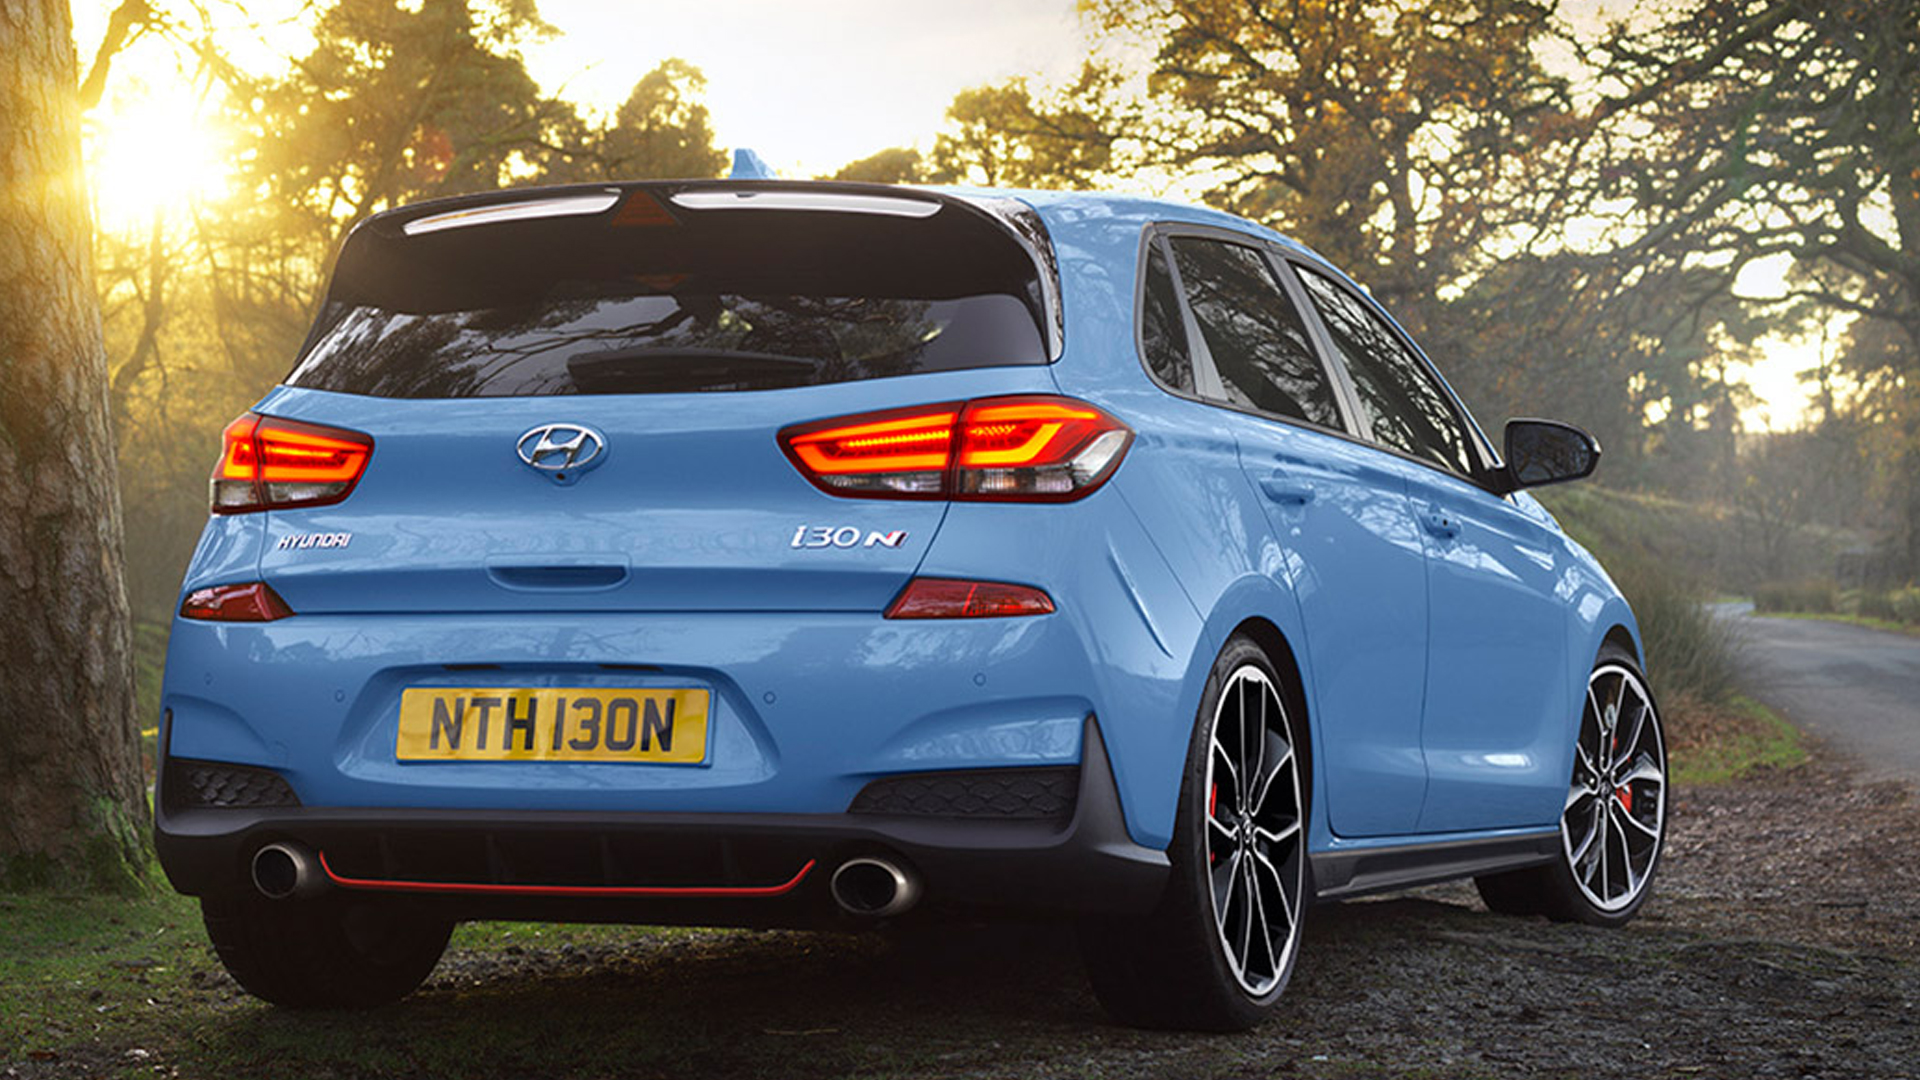 Hyundai i30 N 2018 1 6l Petrol Rear three quarter view